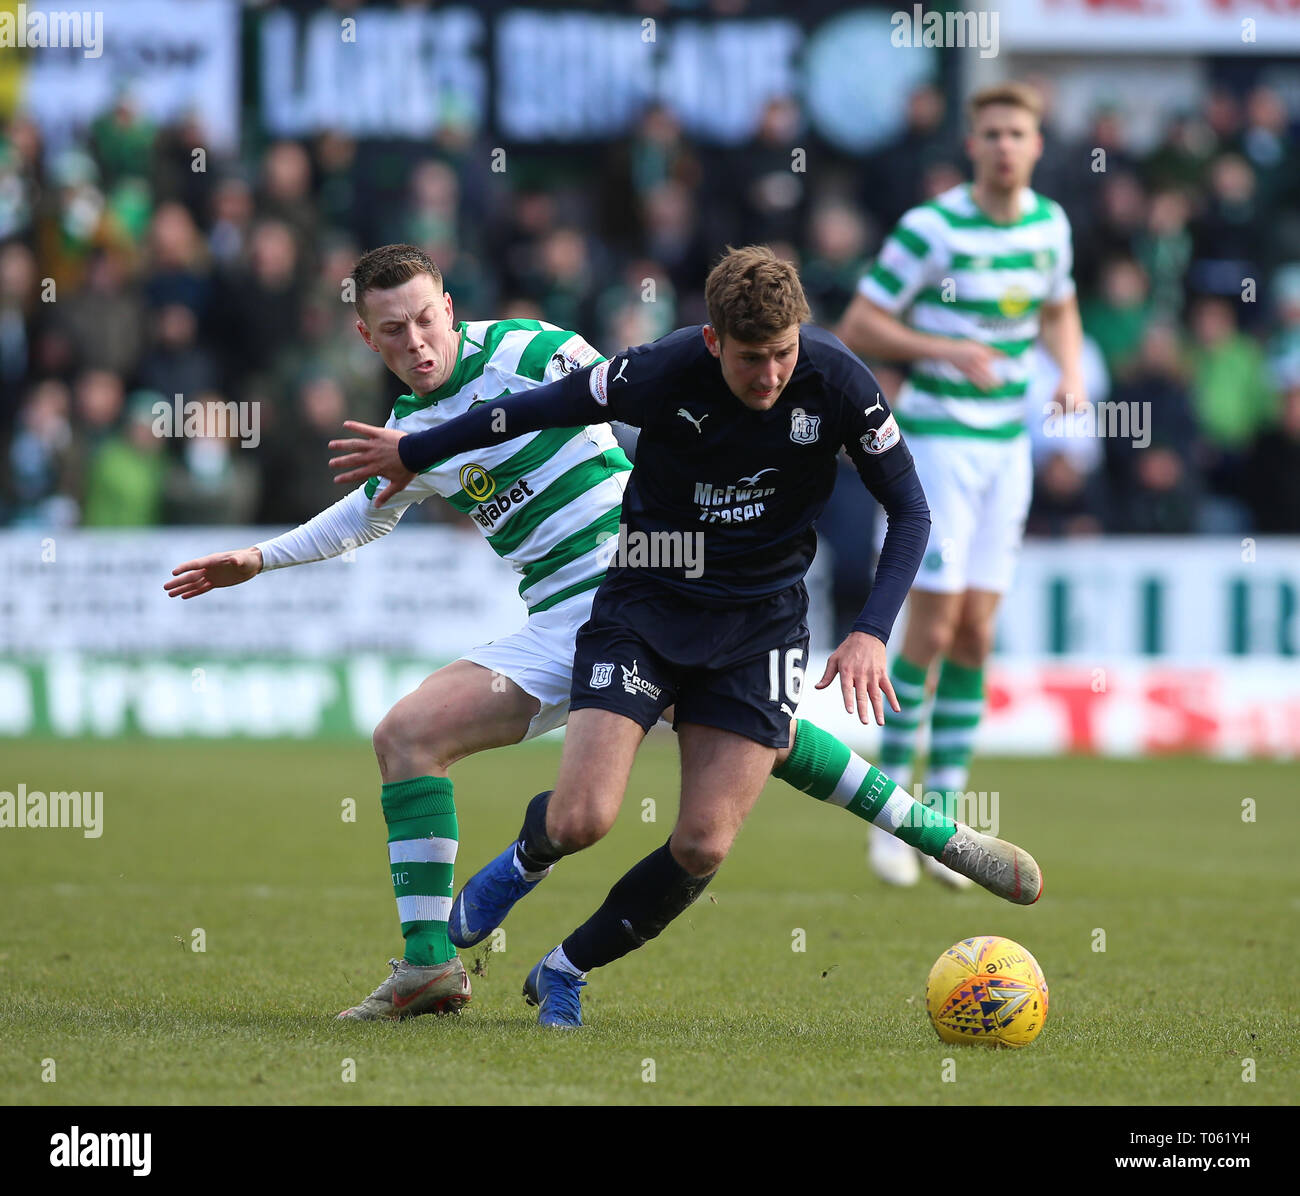 Dundee, UK. 17th Mar, 2019. Ladbrokes Premiership football, Dundee versus Celtic; Callum McGregor of Celtic challenges Ethan Robson of Dundee Credit: Action Plus Sports/Alamy Live News - Stock Image